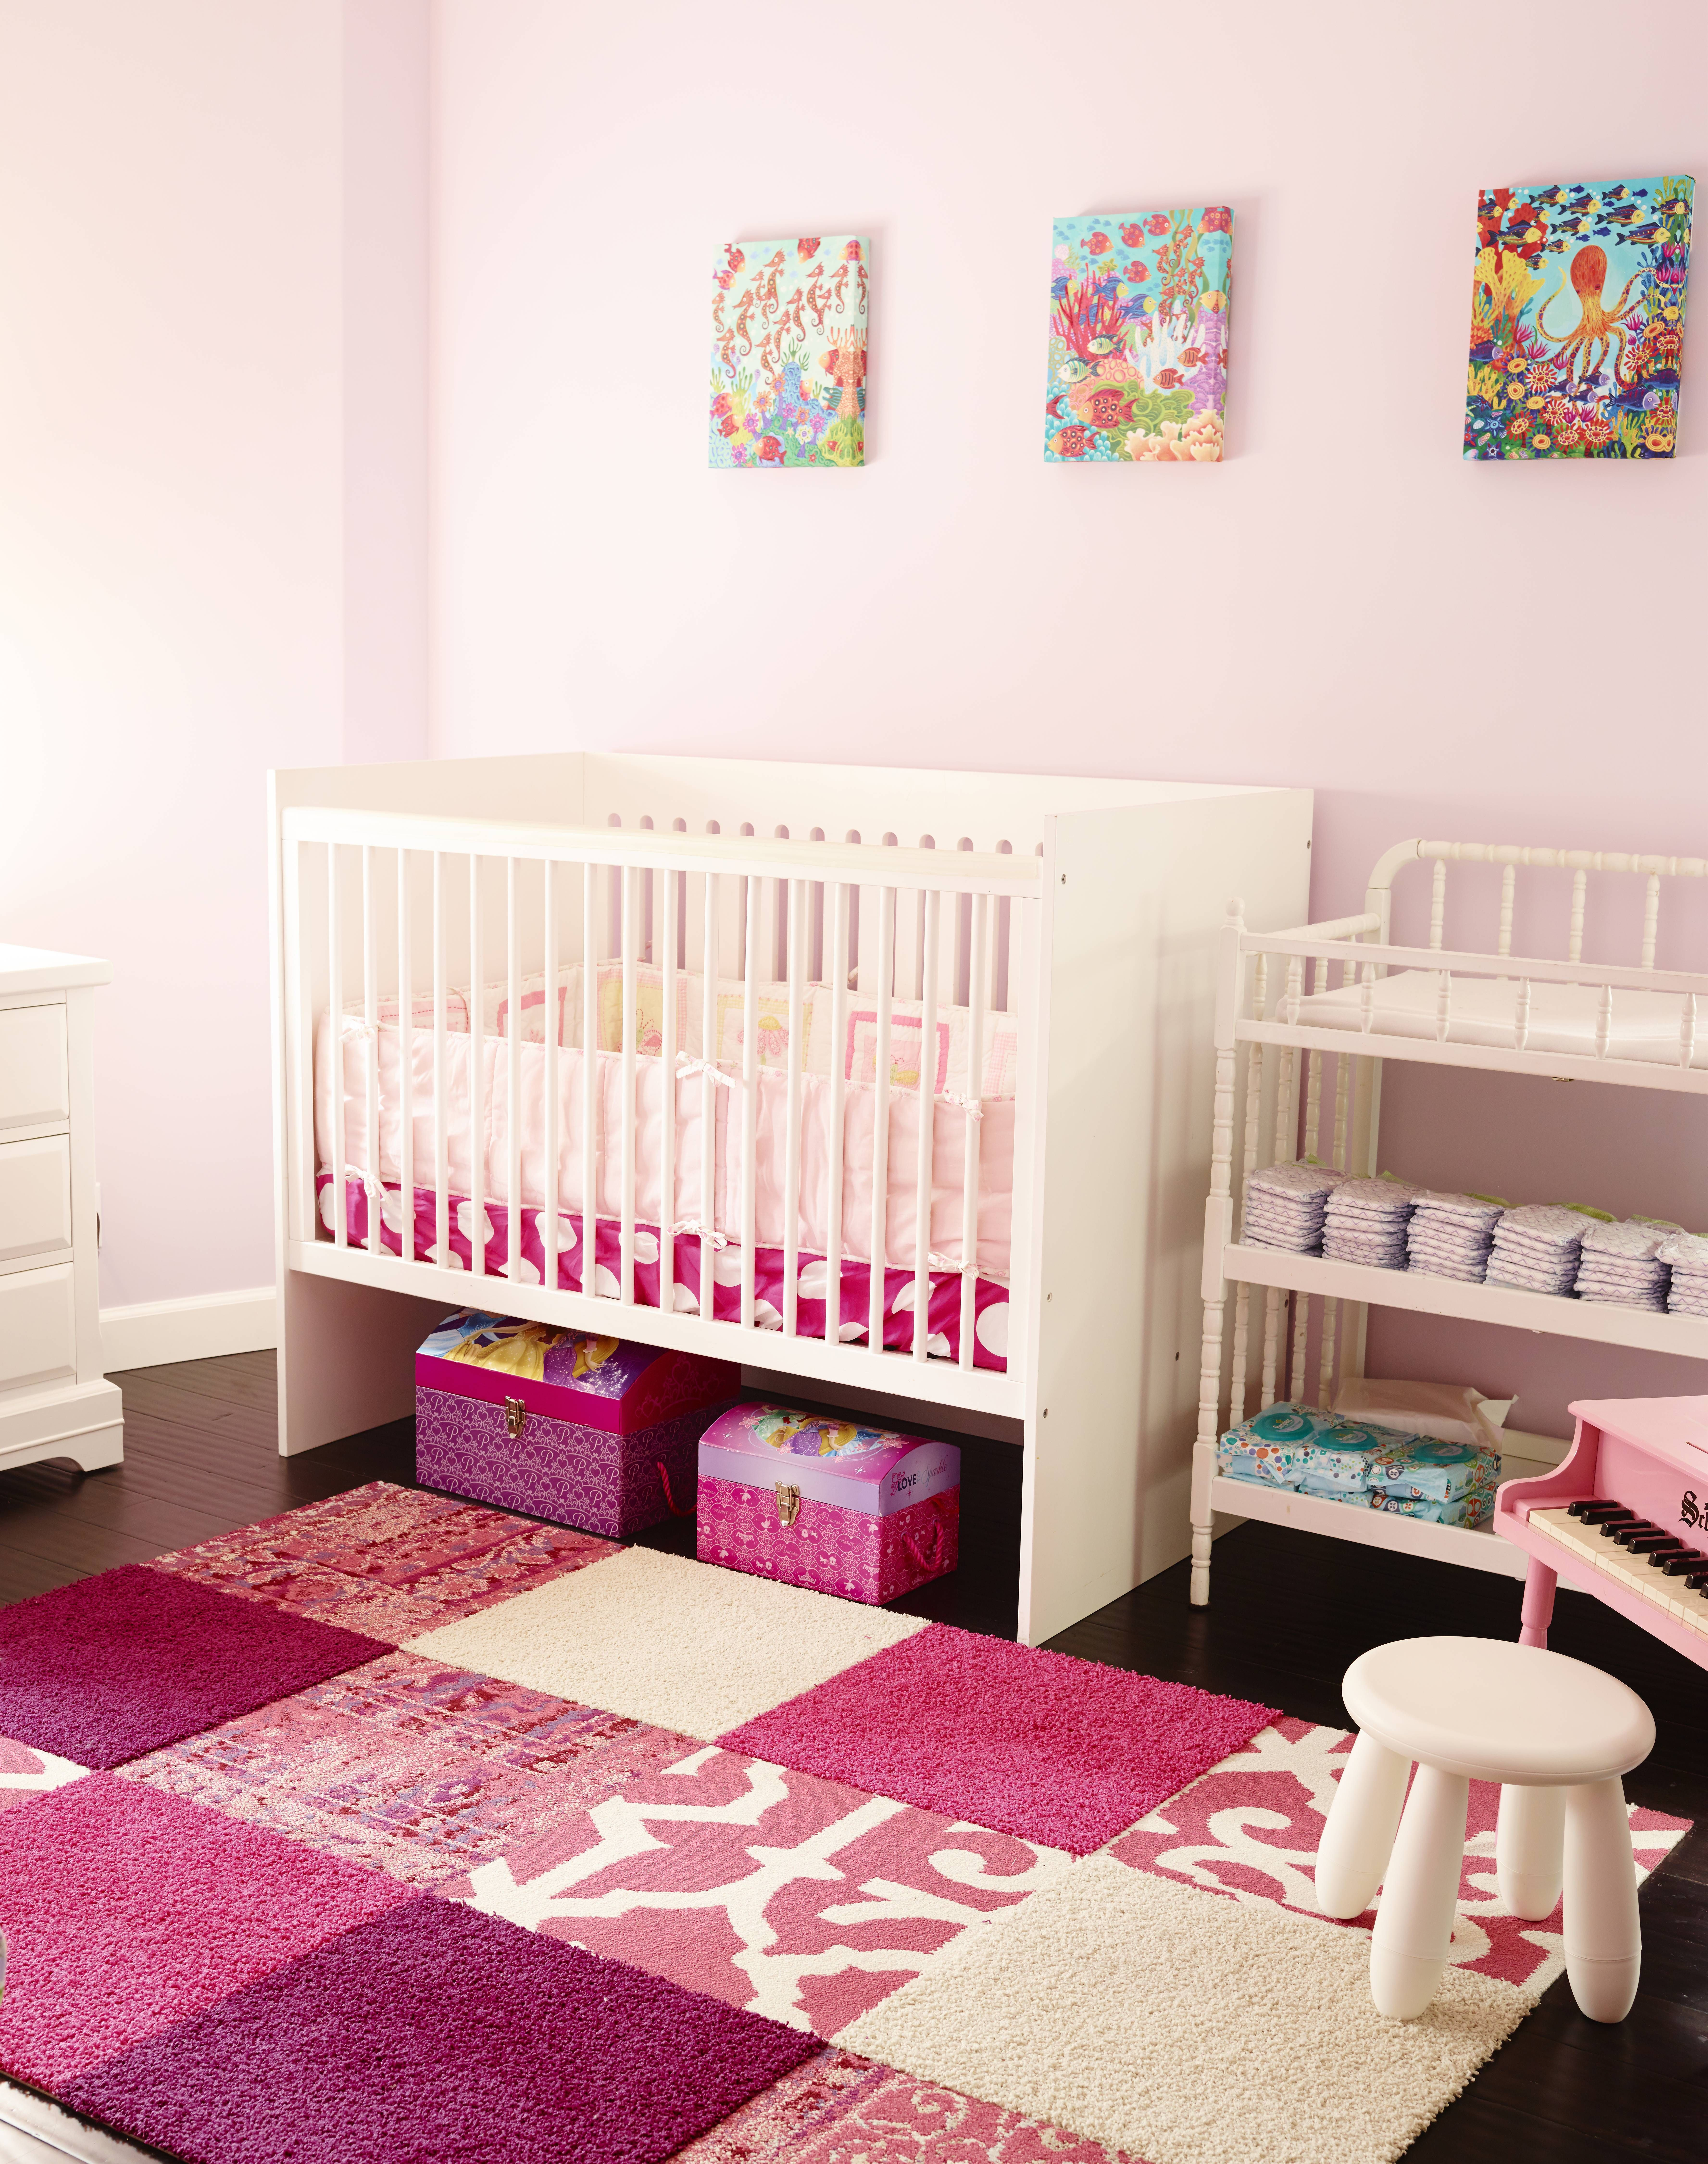 Baby Nursery With Flor Carpet Tiles For Ecobungalow La By Robin